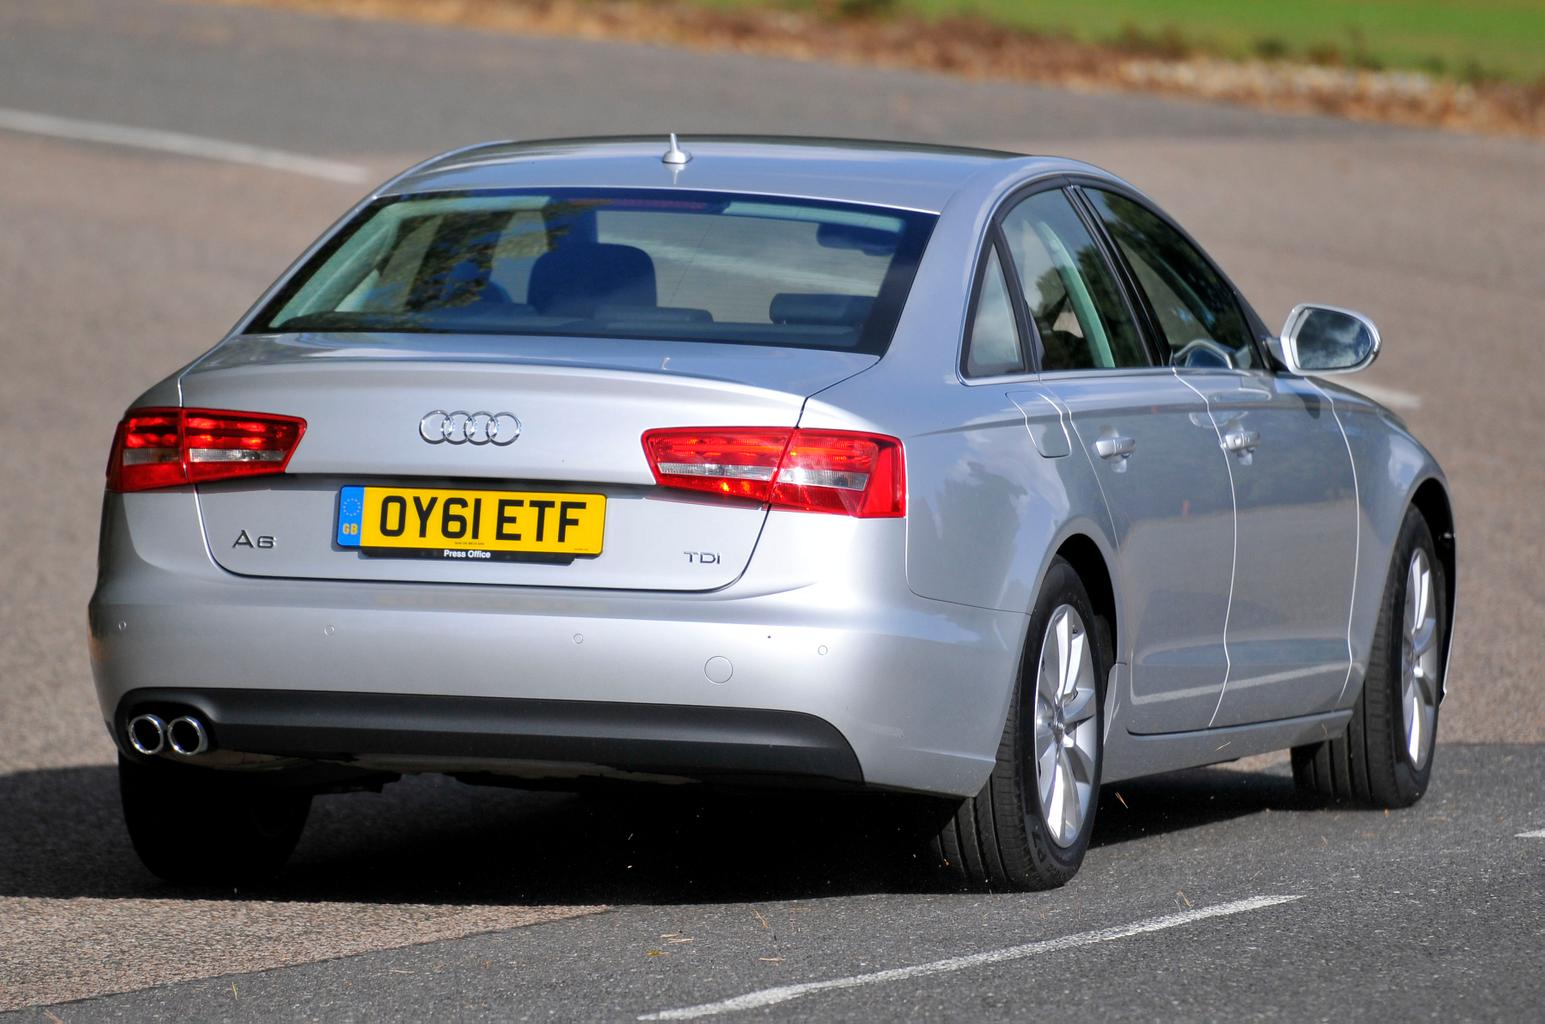 Used Audi A6 vs BMW 5 Series